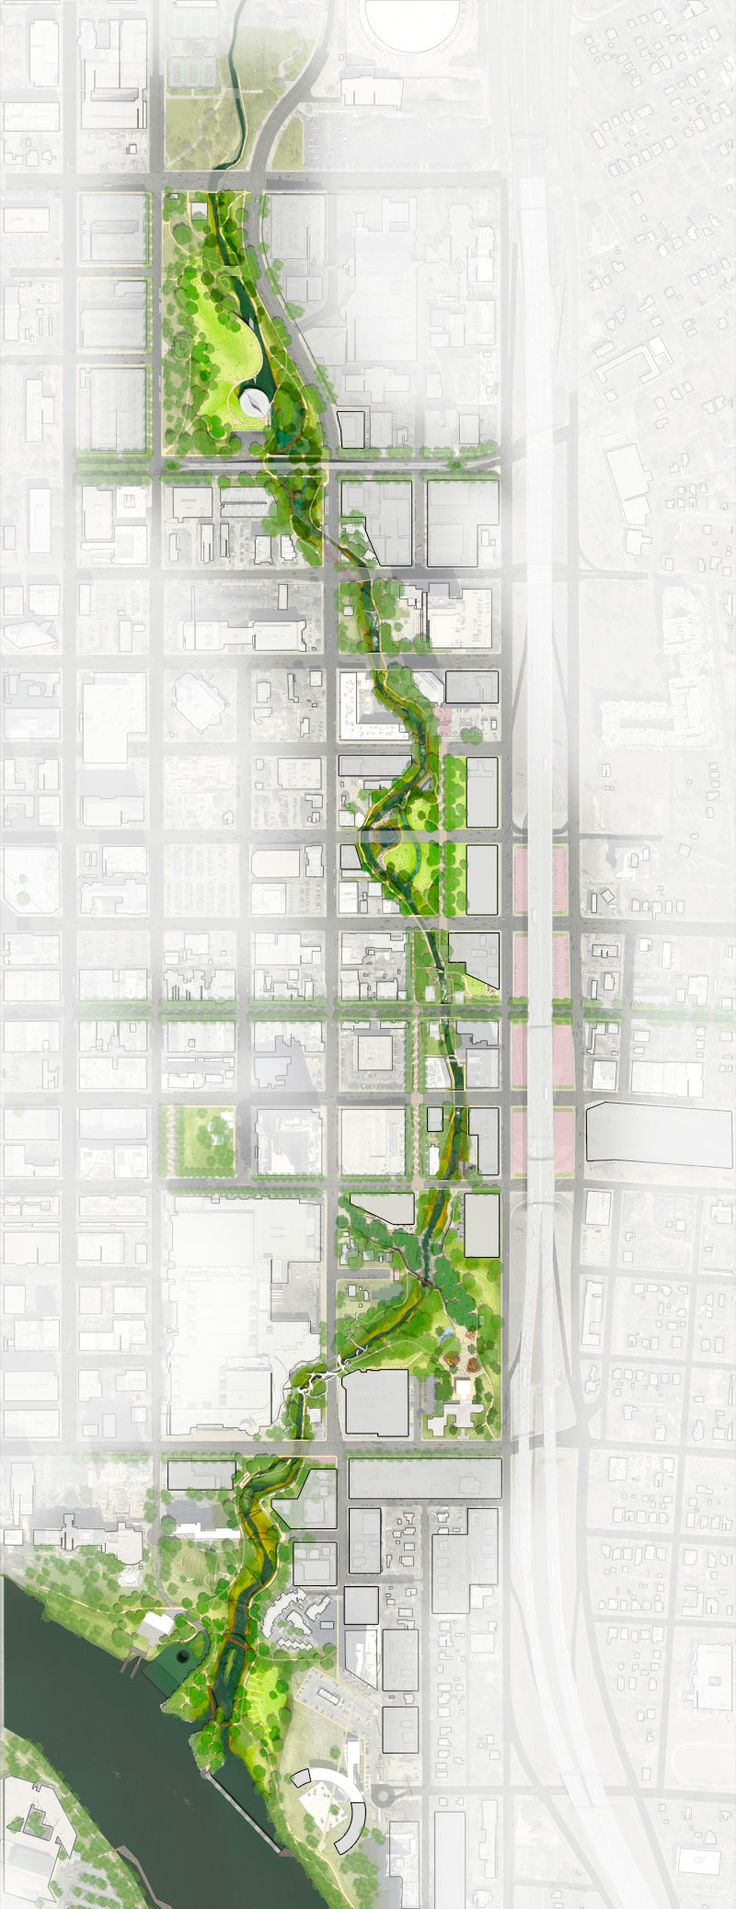 1000 Ideas About Urban Design On Pinterest Architecture